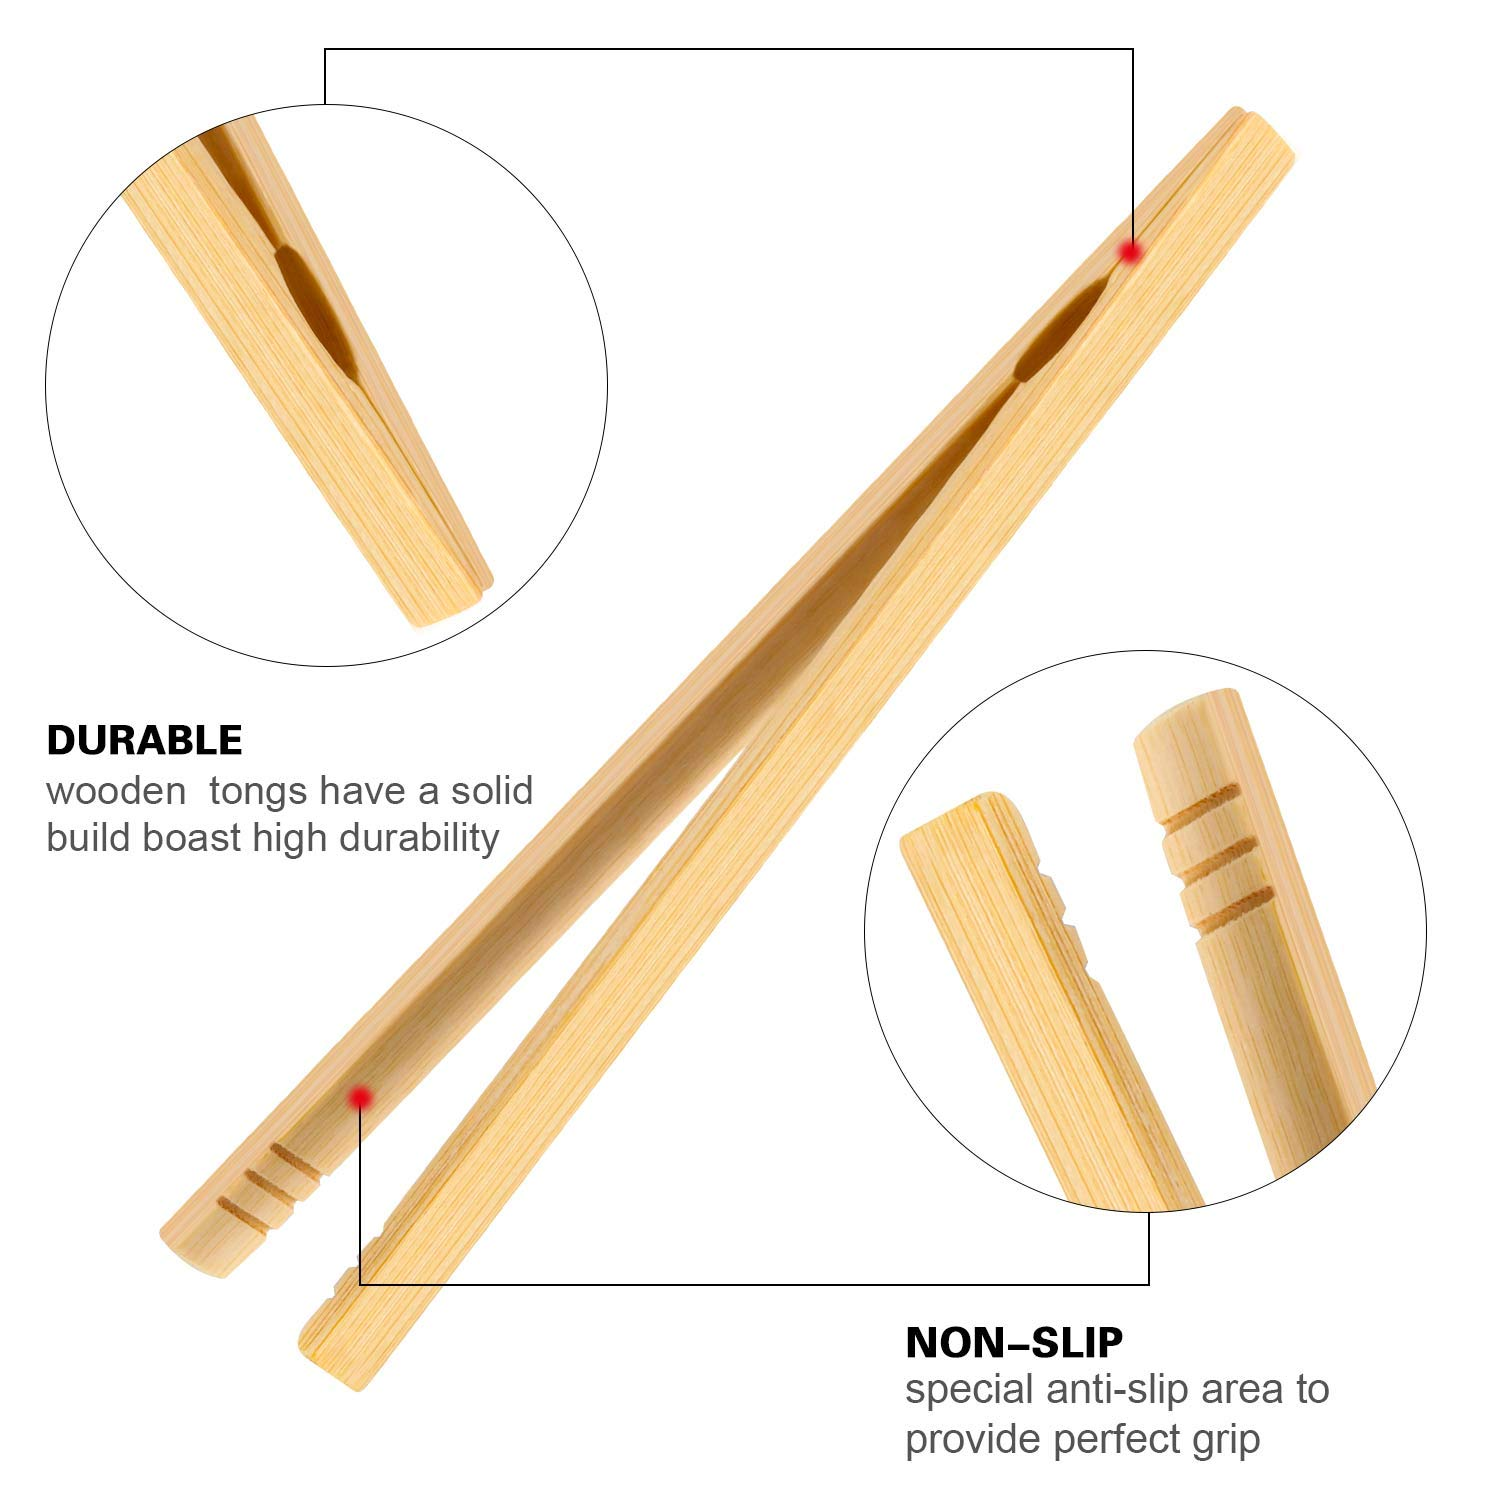 12 Pieces Bamboo Tongs Wood Toast Tongs Bamboo Kitchen Tongs for Cooking Bread Fruit Tea and Pickles 7 Inches